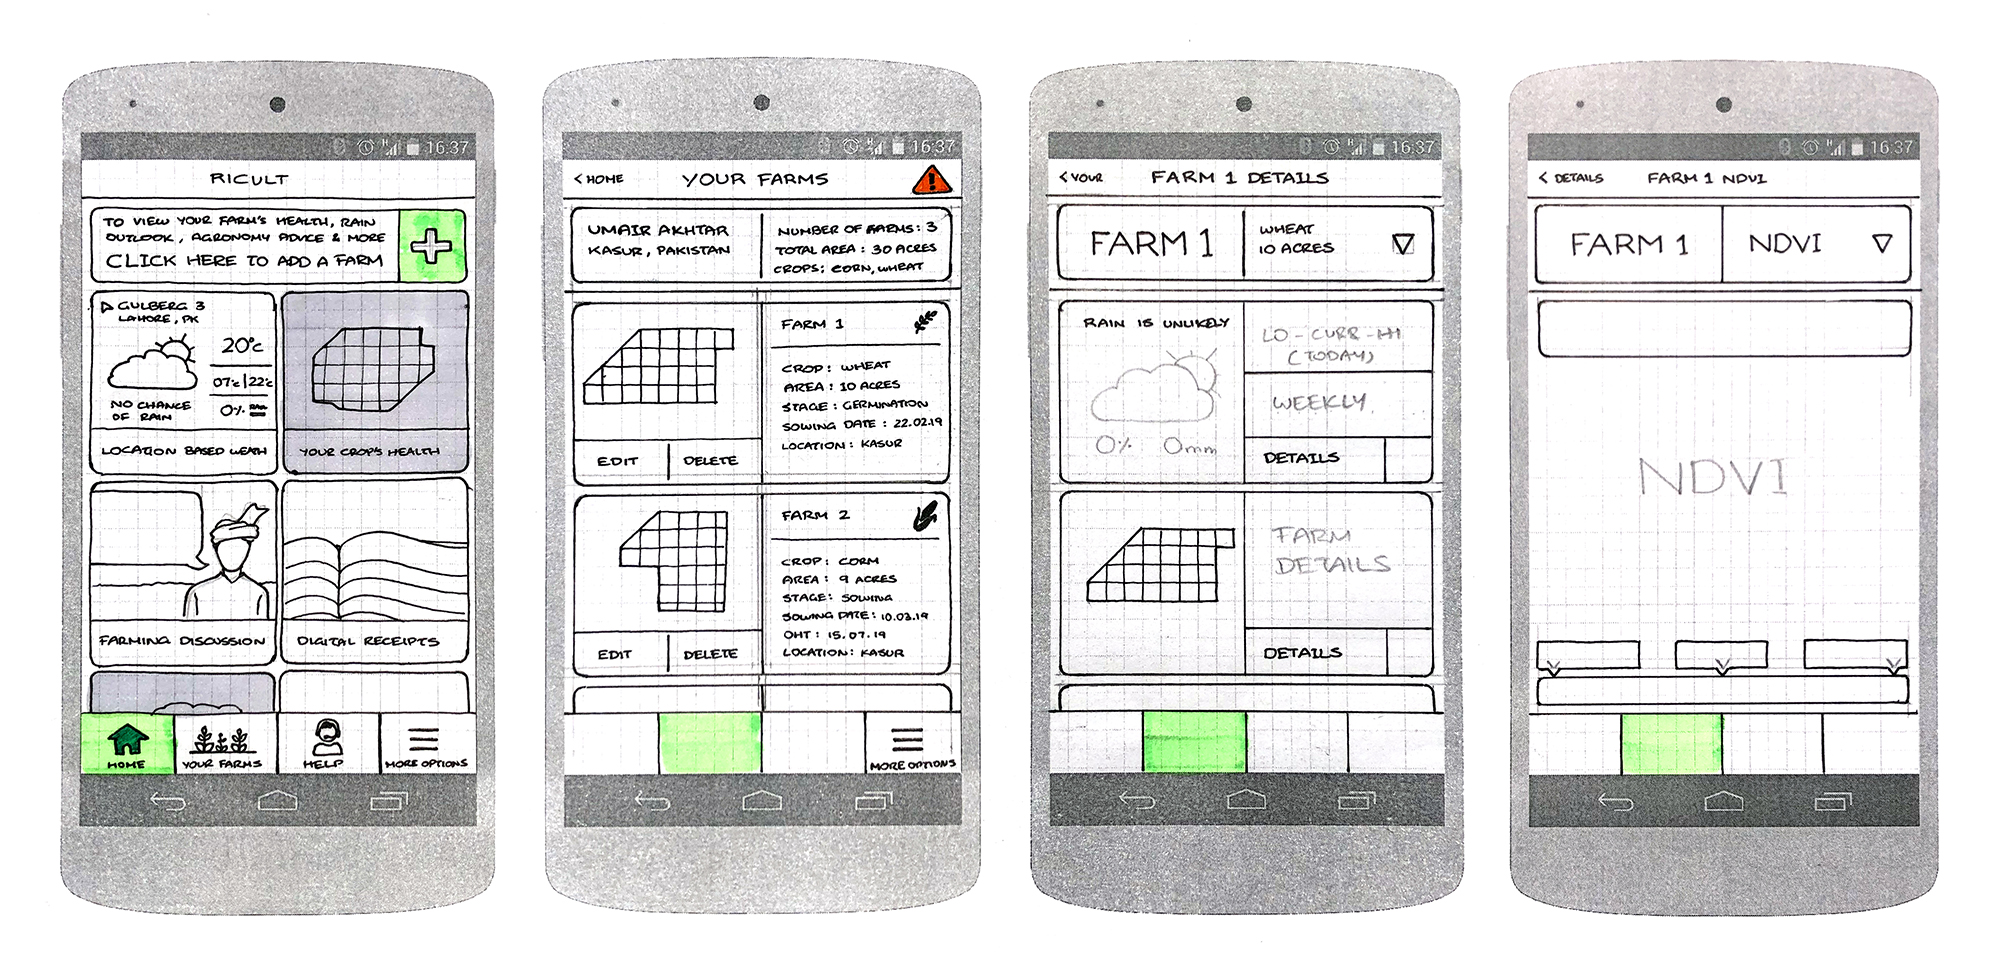 As more screens started taking shape, details were added, increasing the fidelity of our paper prototypes